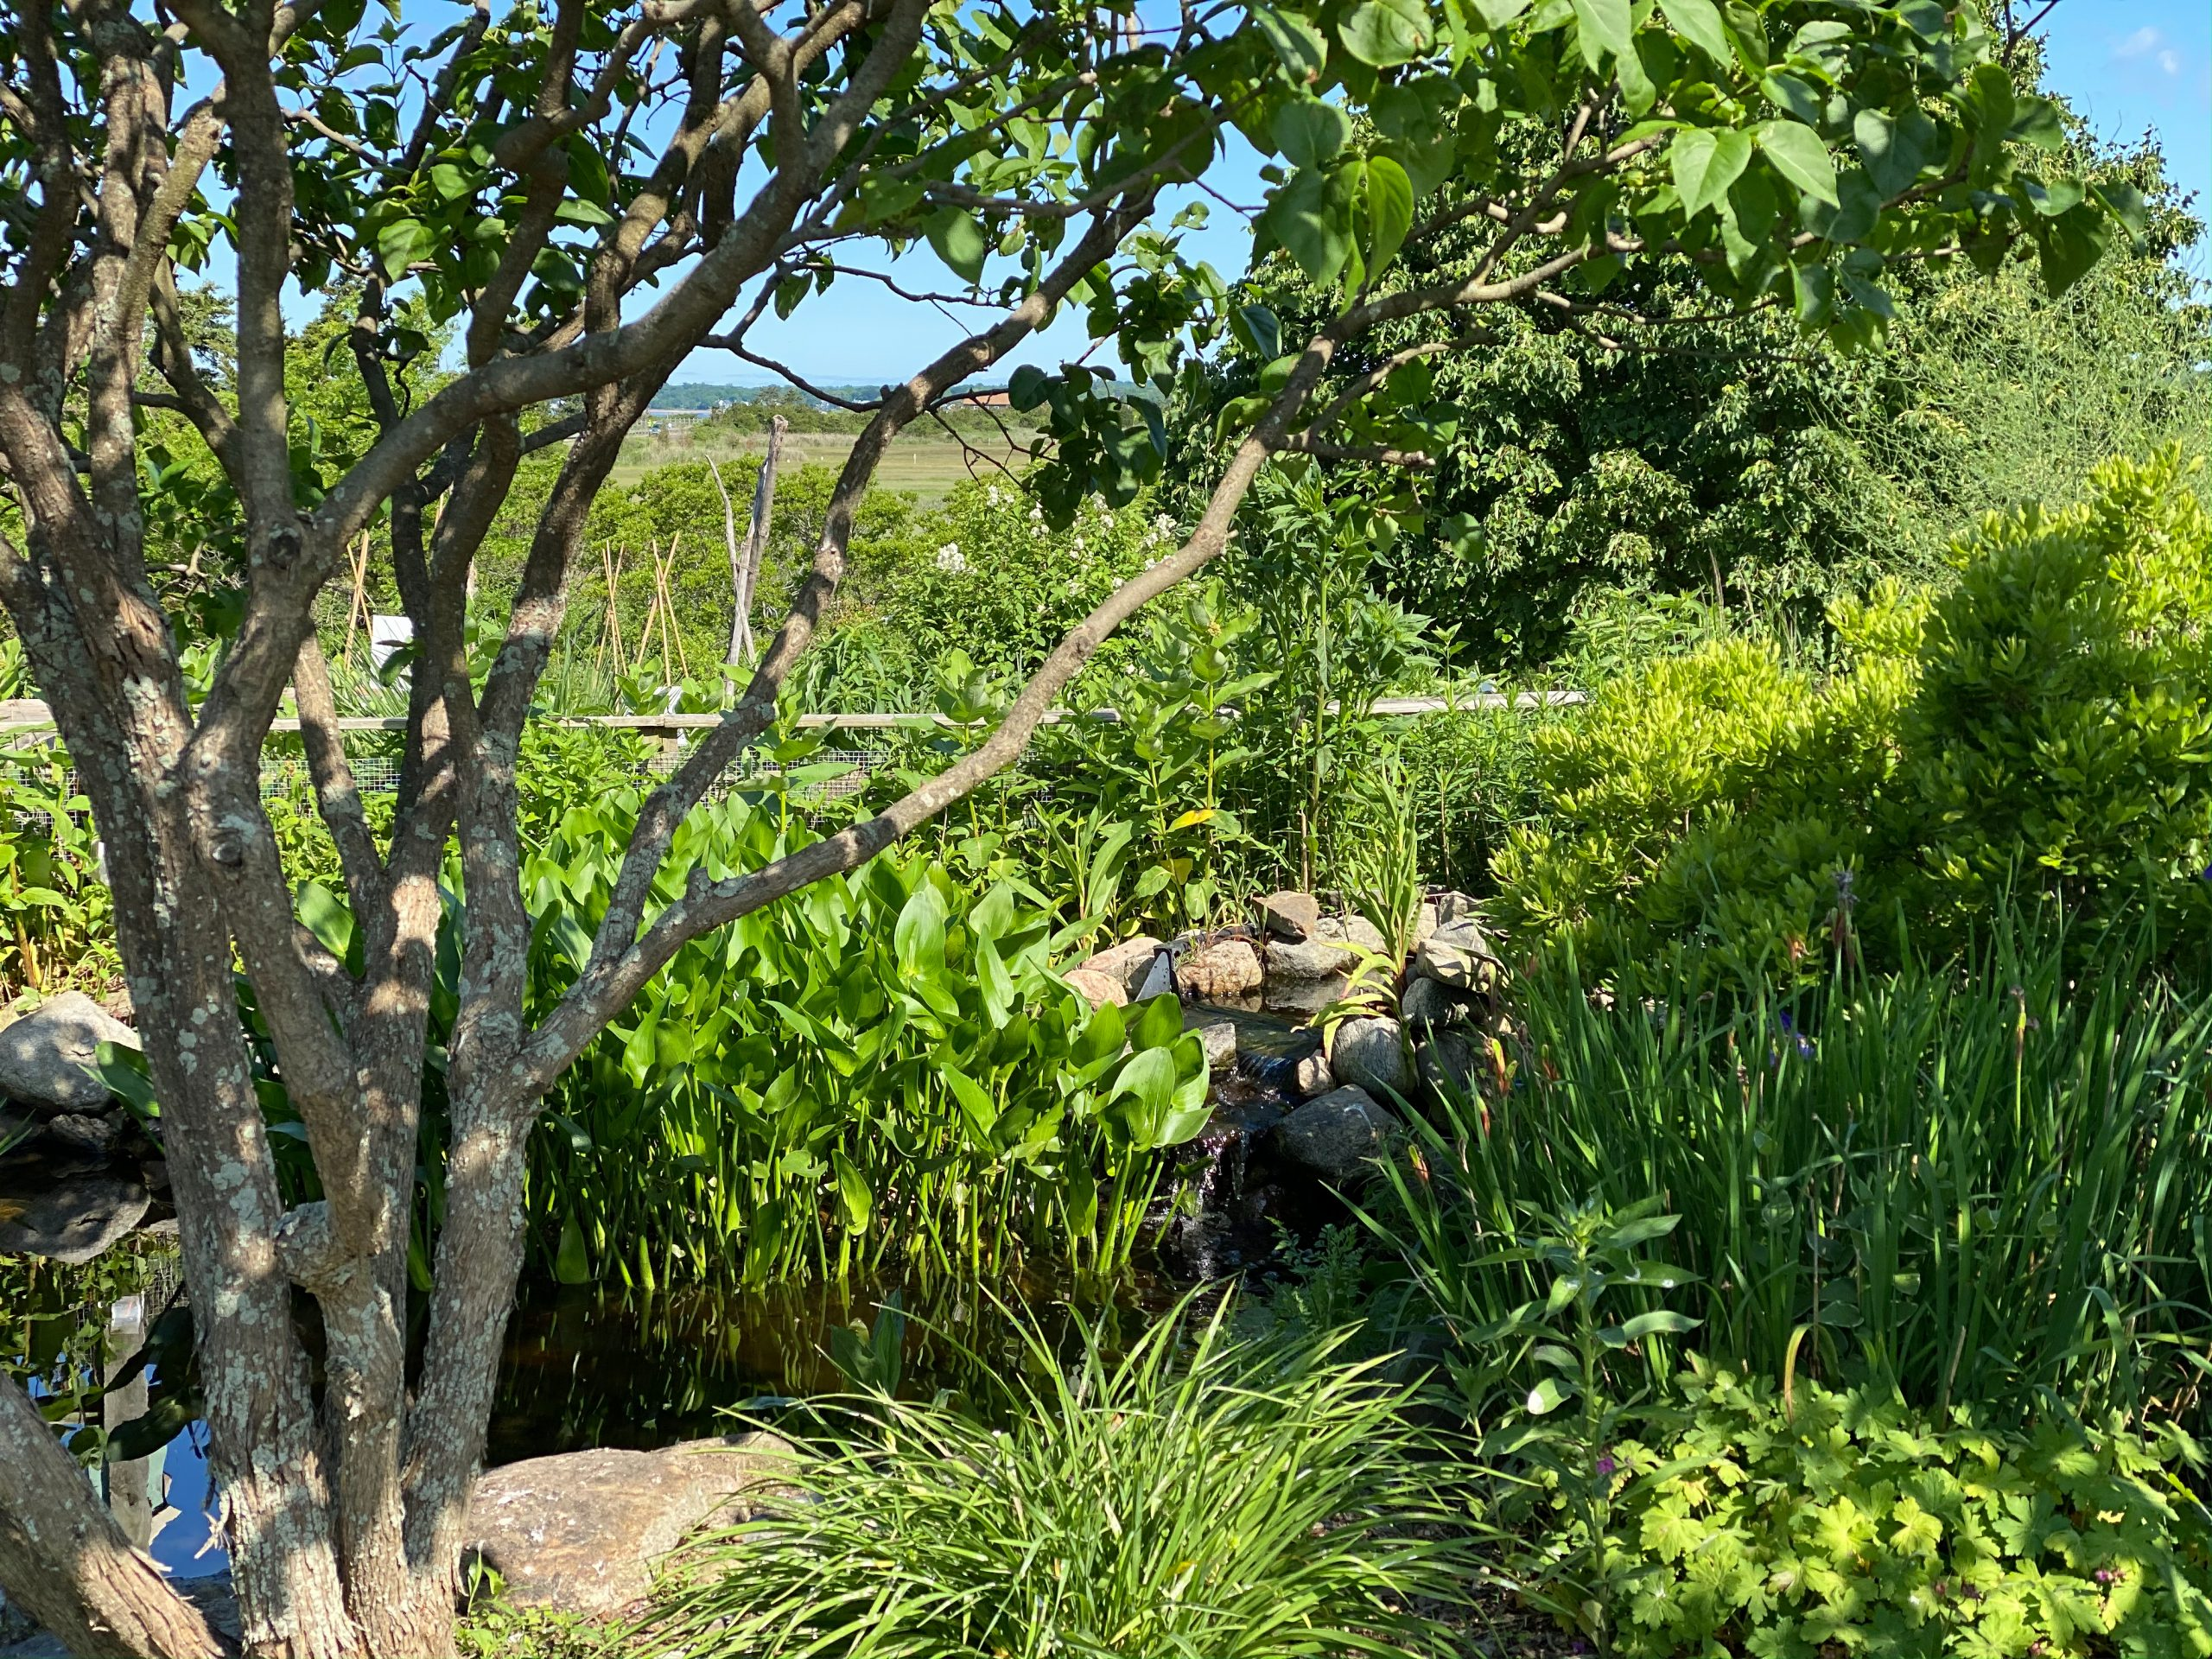 The Gardens at Meigs Point Nature Center